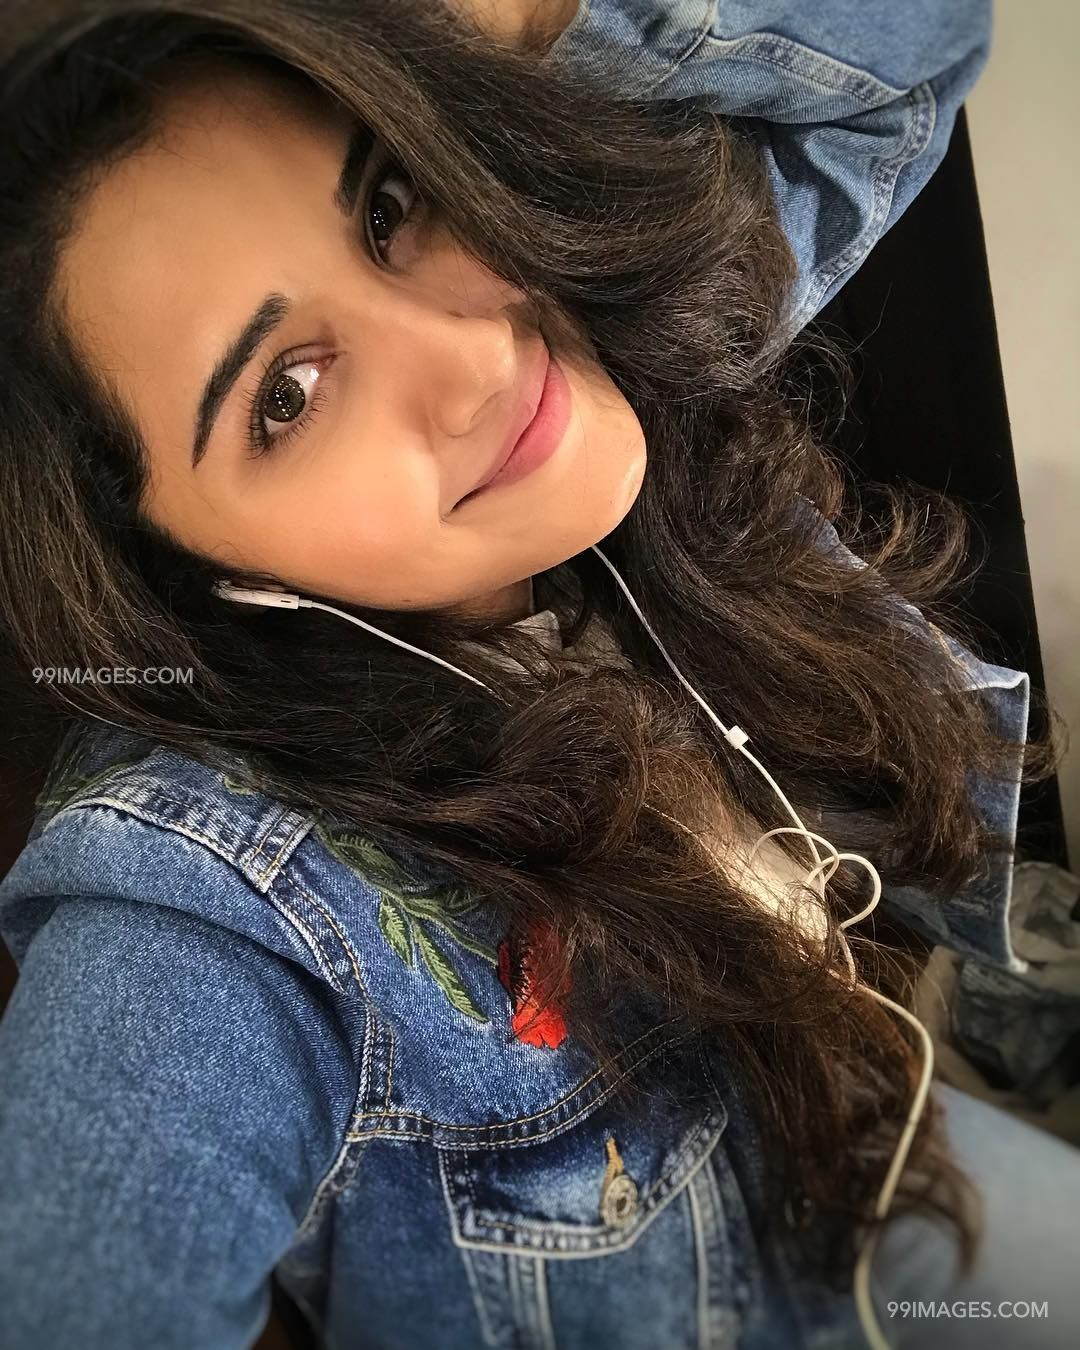 Anupama Parameswaran Beautiful HD Photoshoot Stills & Mobile Wallpapers HD, WhatsApp DP (1080p) (19135) - Anupama Parameswaran